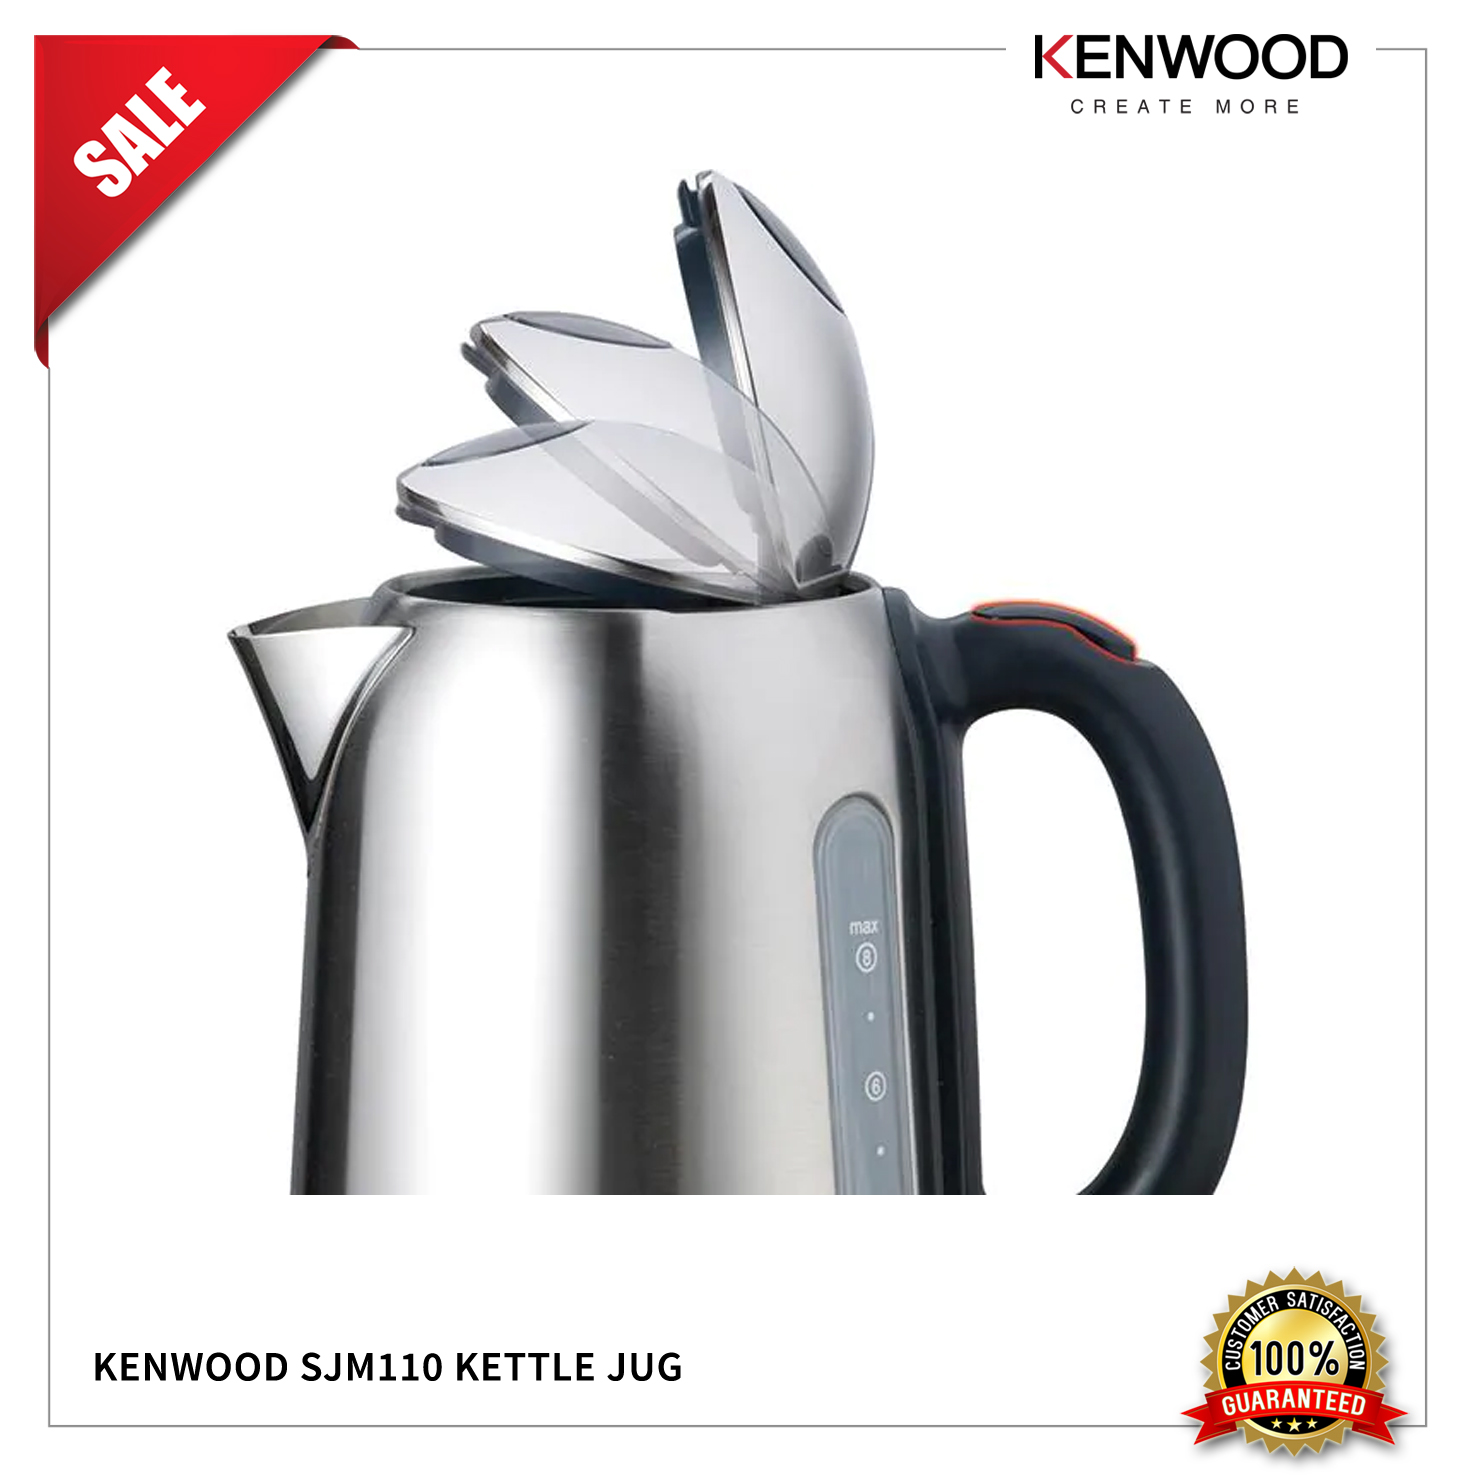 KENWOOD SJM110 _POLISHD FLIP – REVISI 4